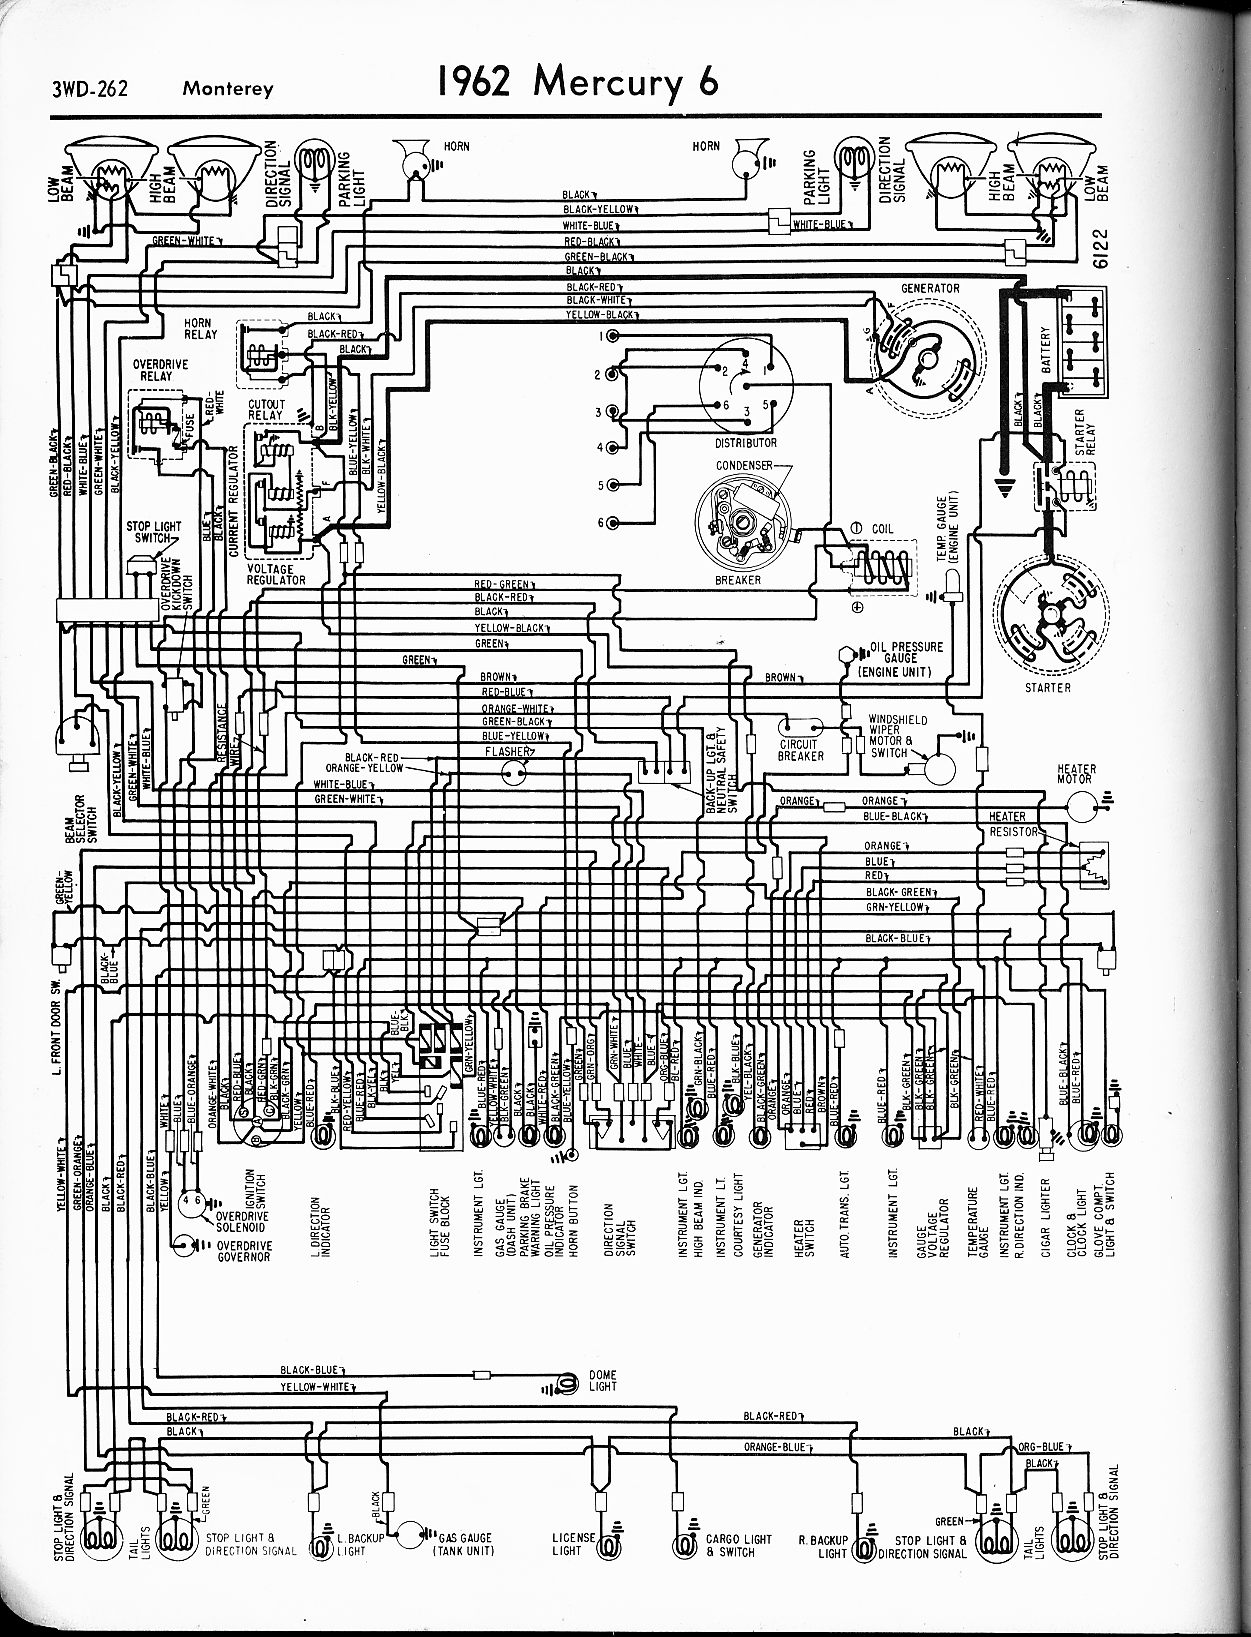 Ford Thunderbird Starter Solenoid Diagram House Wiring How To Wire A 1965 Mercury Relay Enthusiast Diagrams U2022 Rh Rasalibre Co 8n 2001 F 250